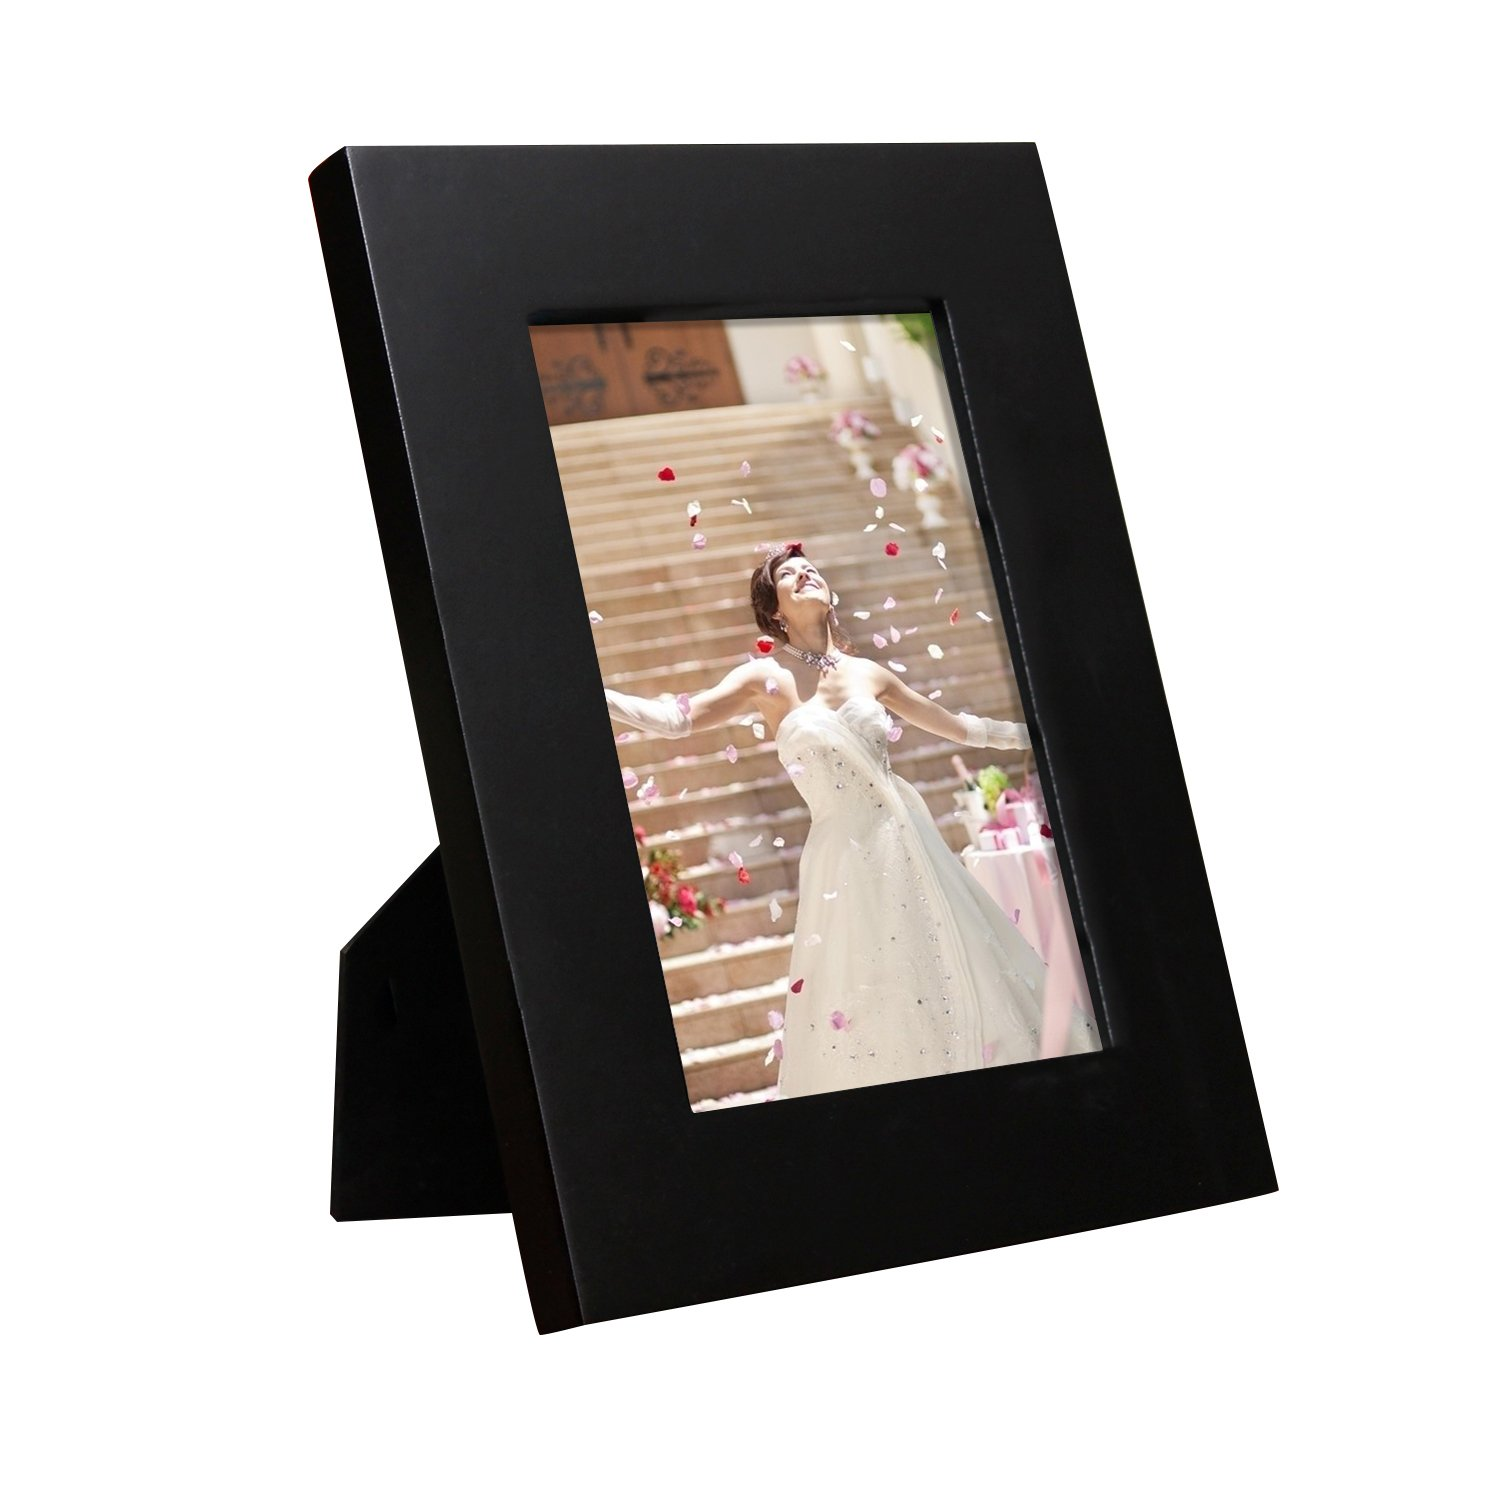 Wall Hanging or Table Top Desktop Display Made to Display 4x6 Photo PF0403 Adeco 8x6 Black Wood Decroative Wide Picture Frame